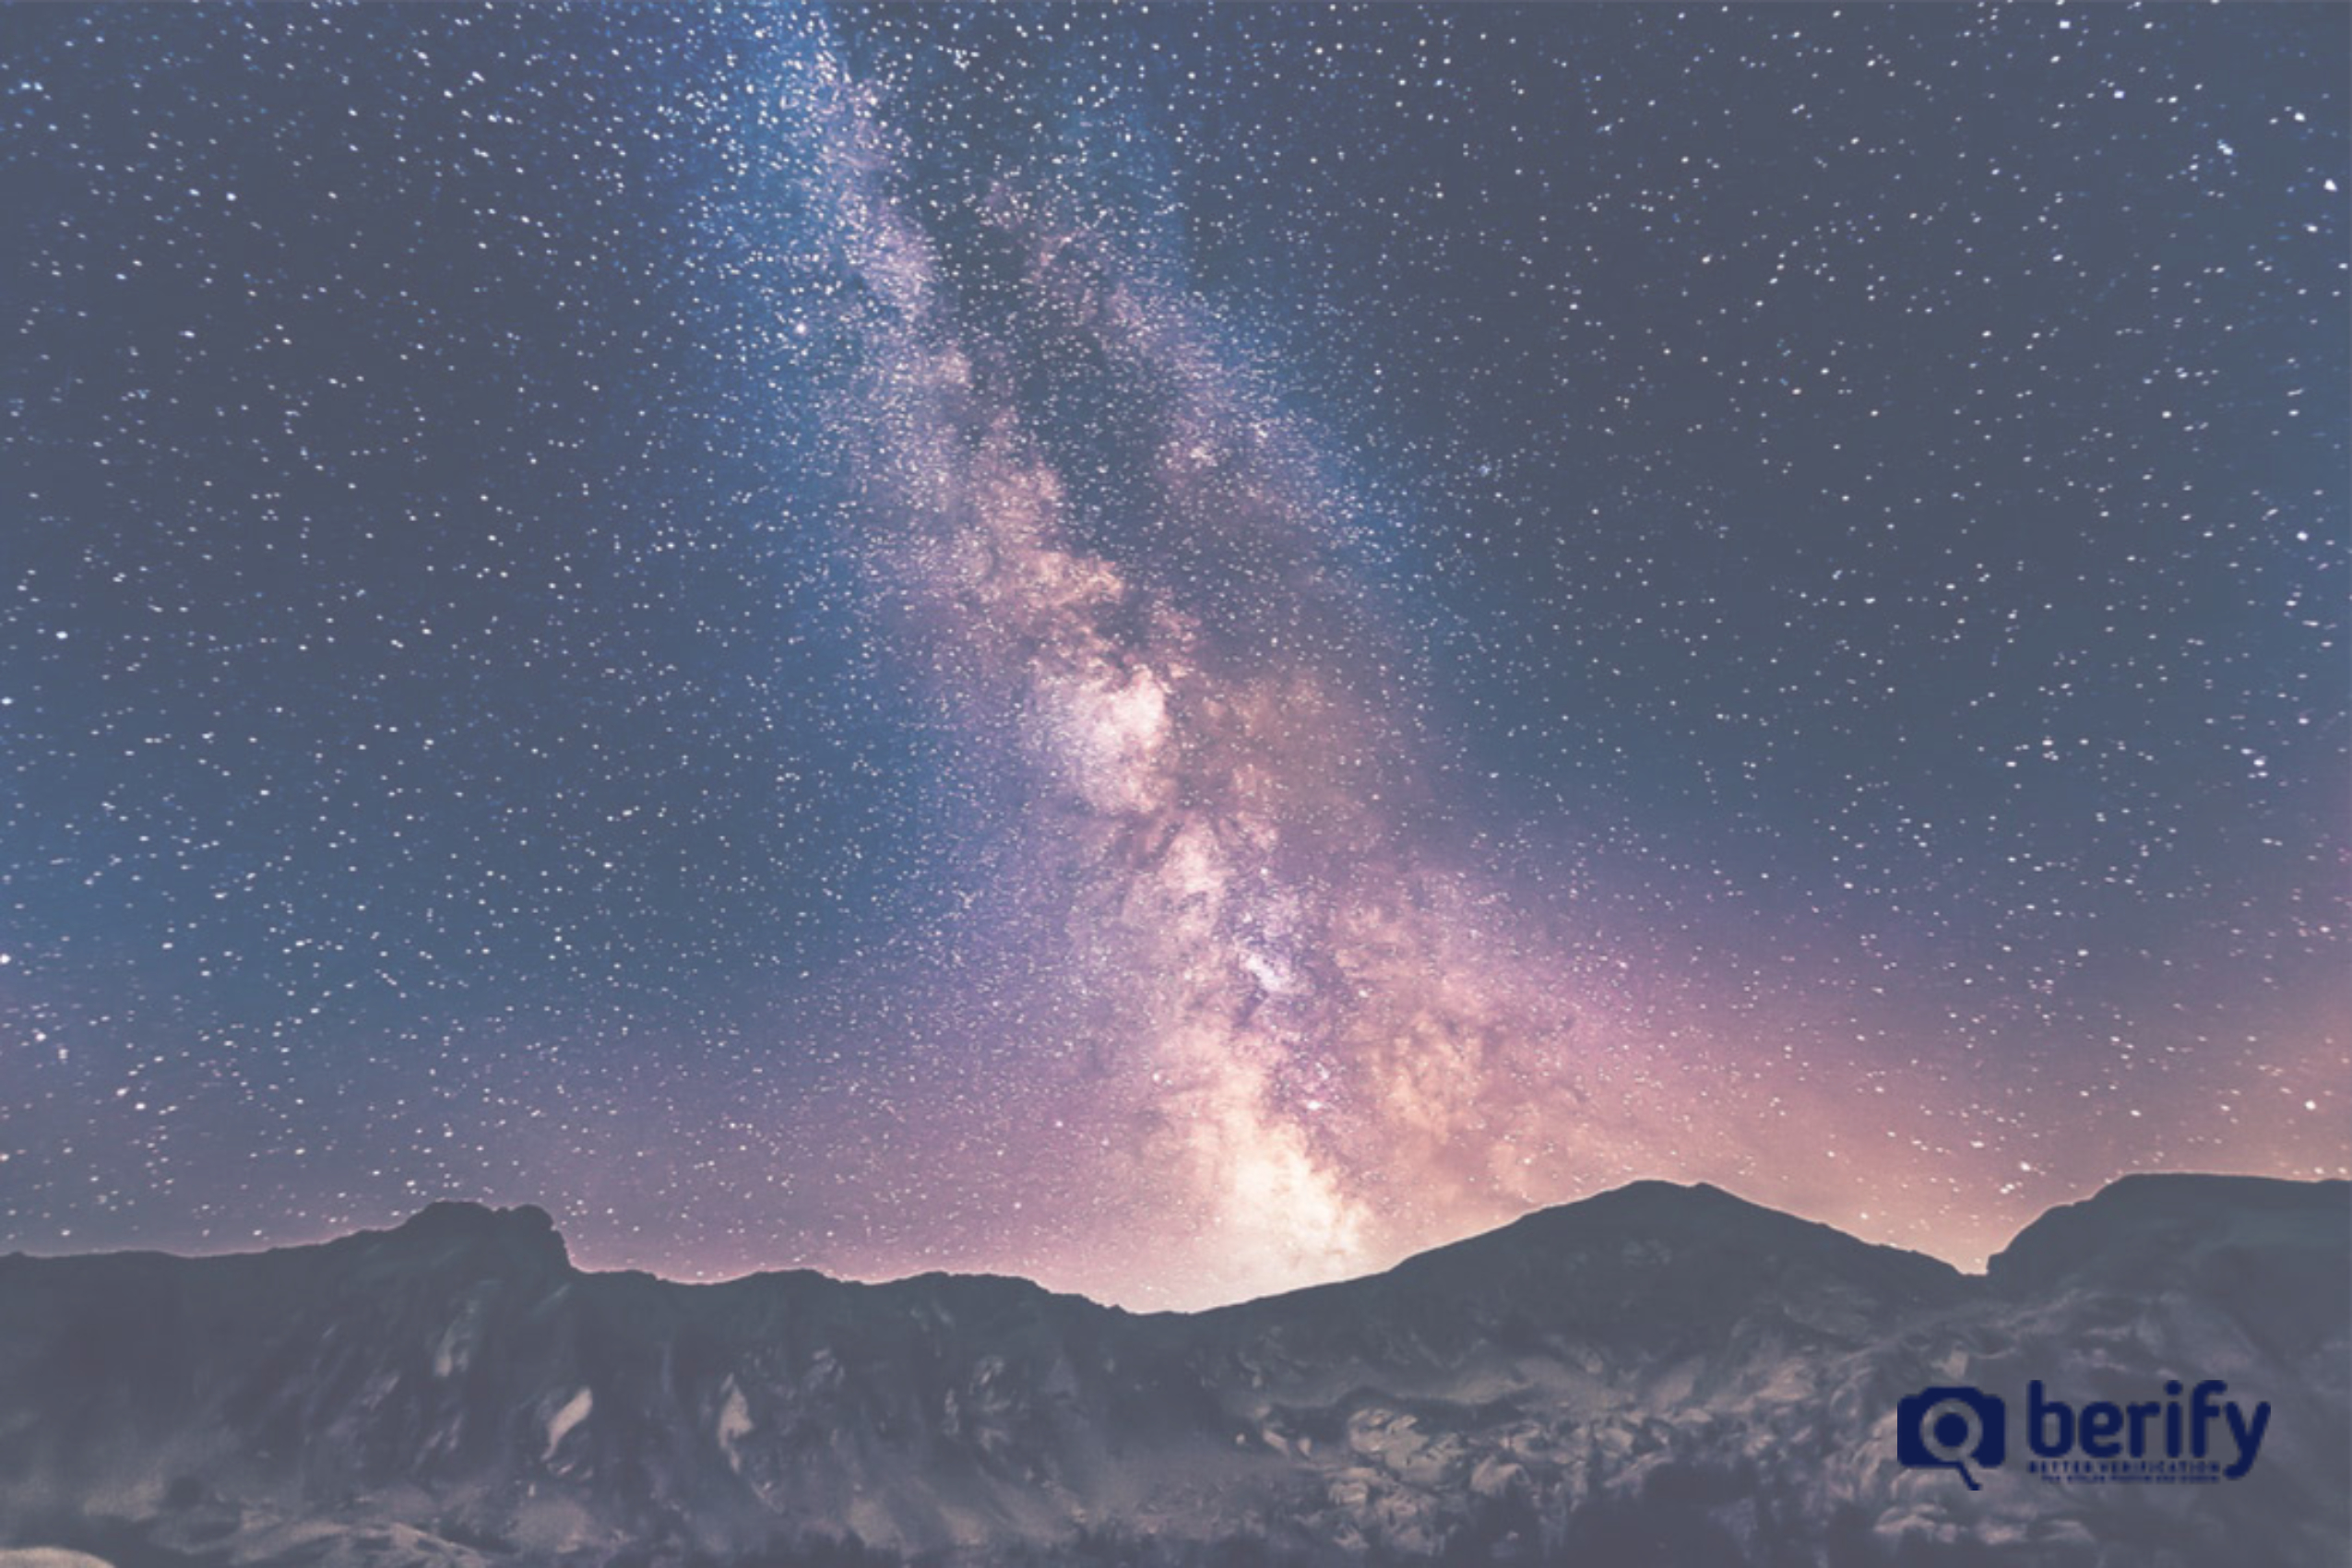 Astrophotography: 6 Tips and Techniques for Beginners - Berify